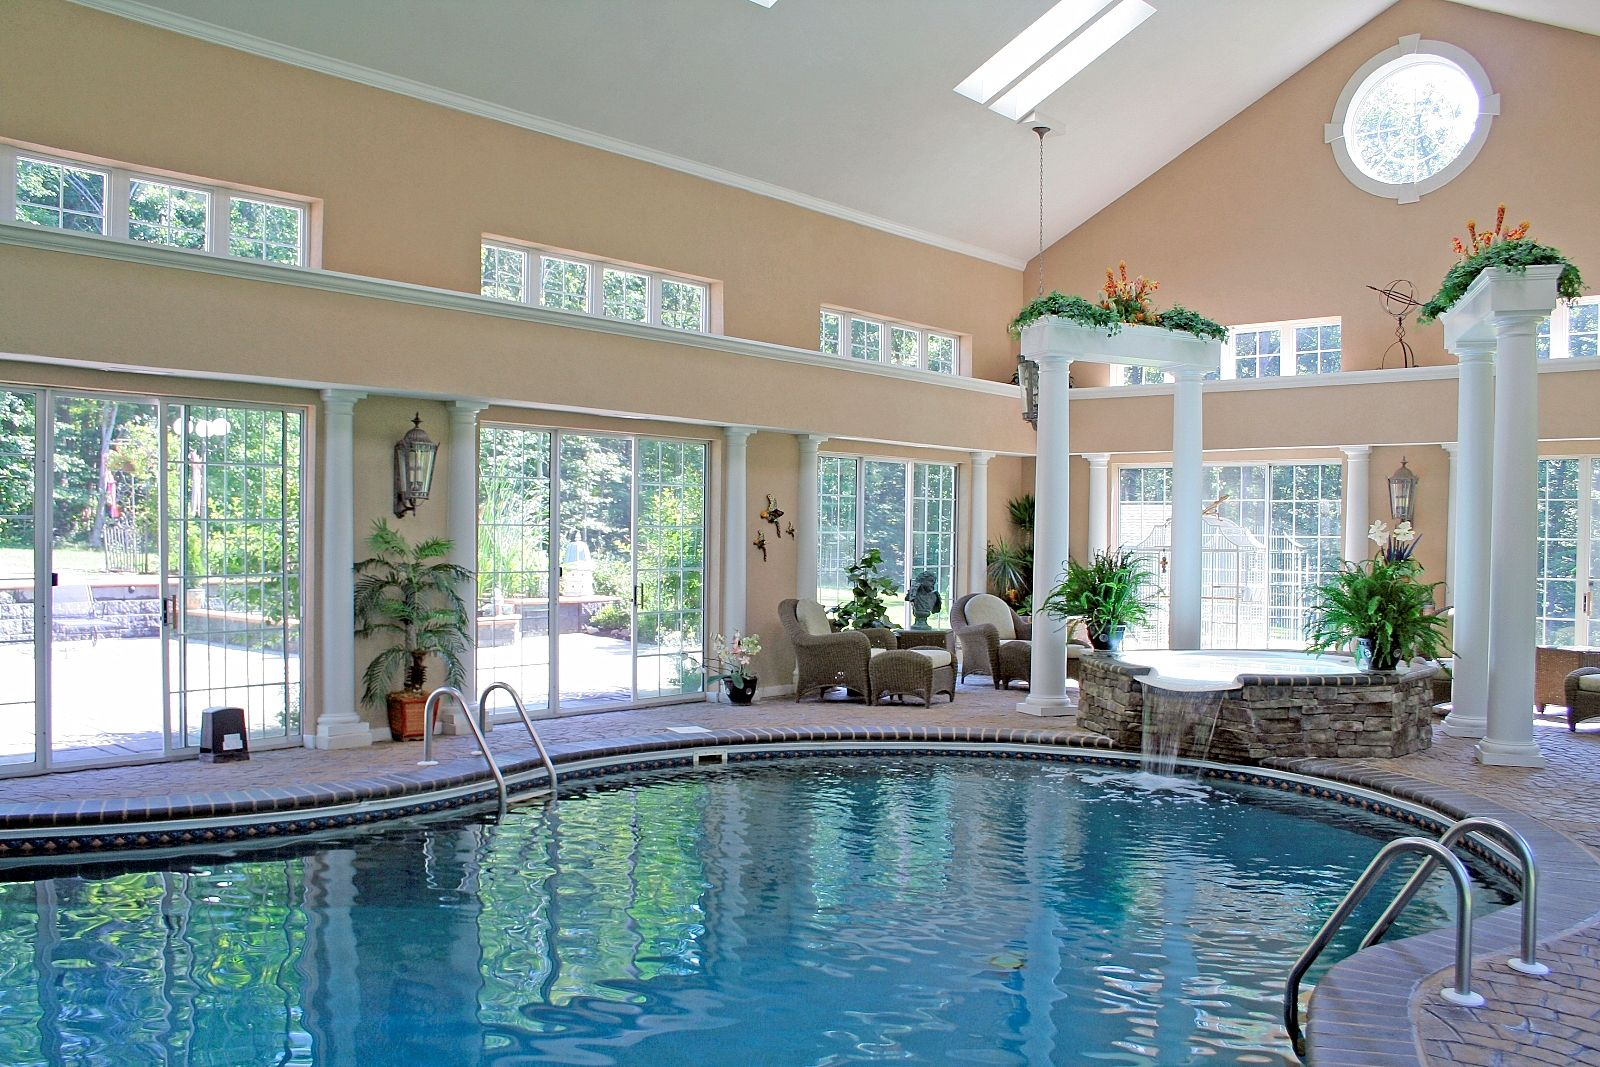 Indoor Pools In Homes Interesting The House Swimming Pool Will Not Make The Home Become Perfect If Inspiration